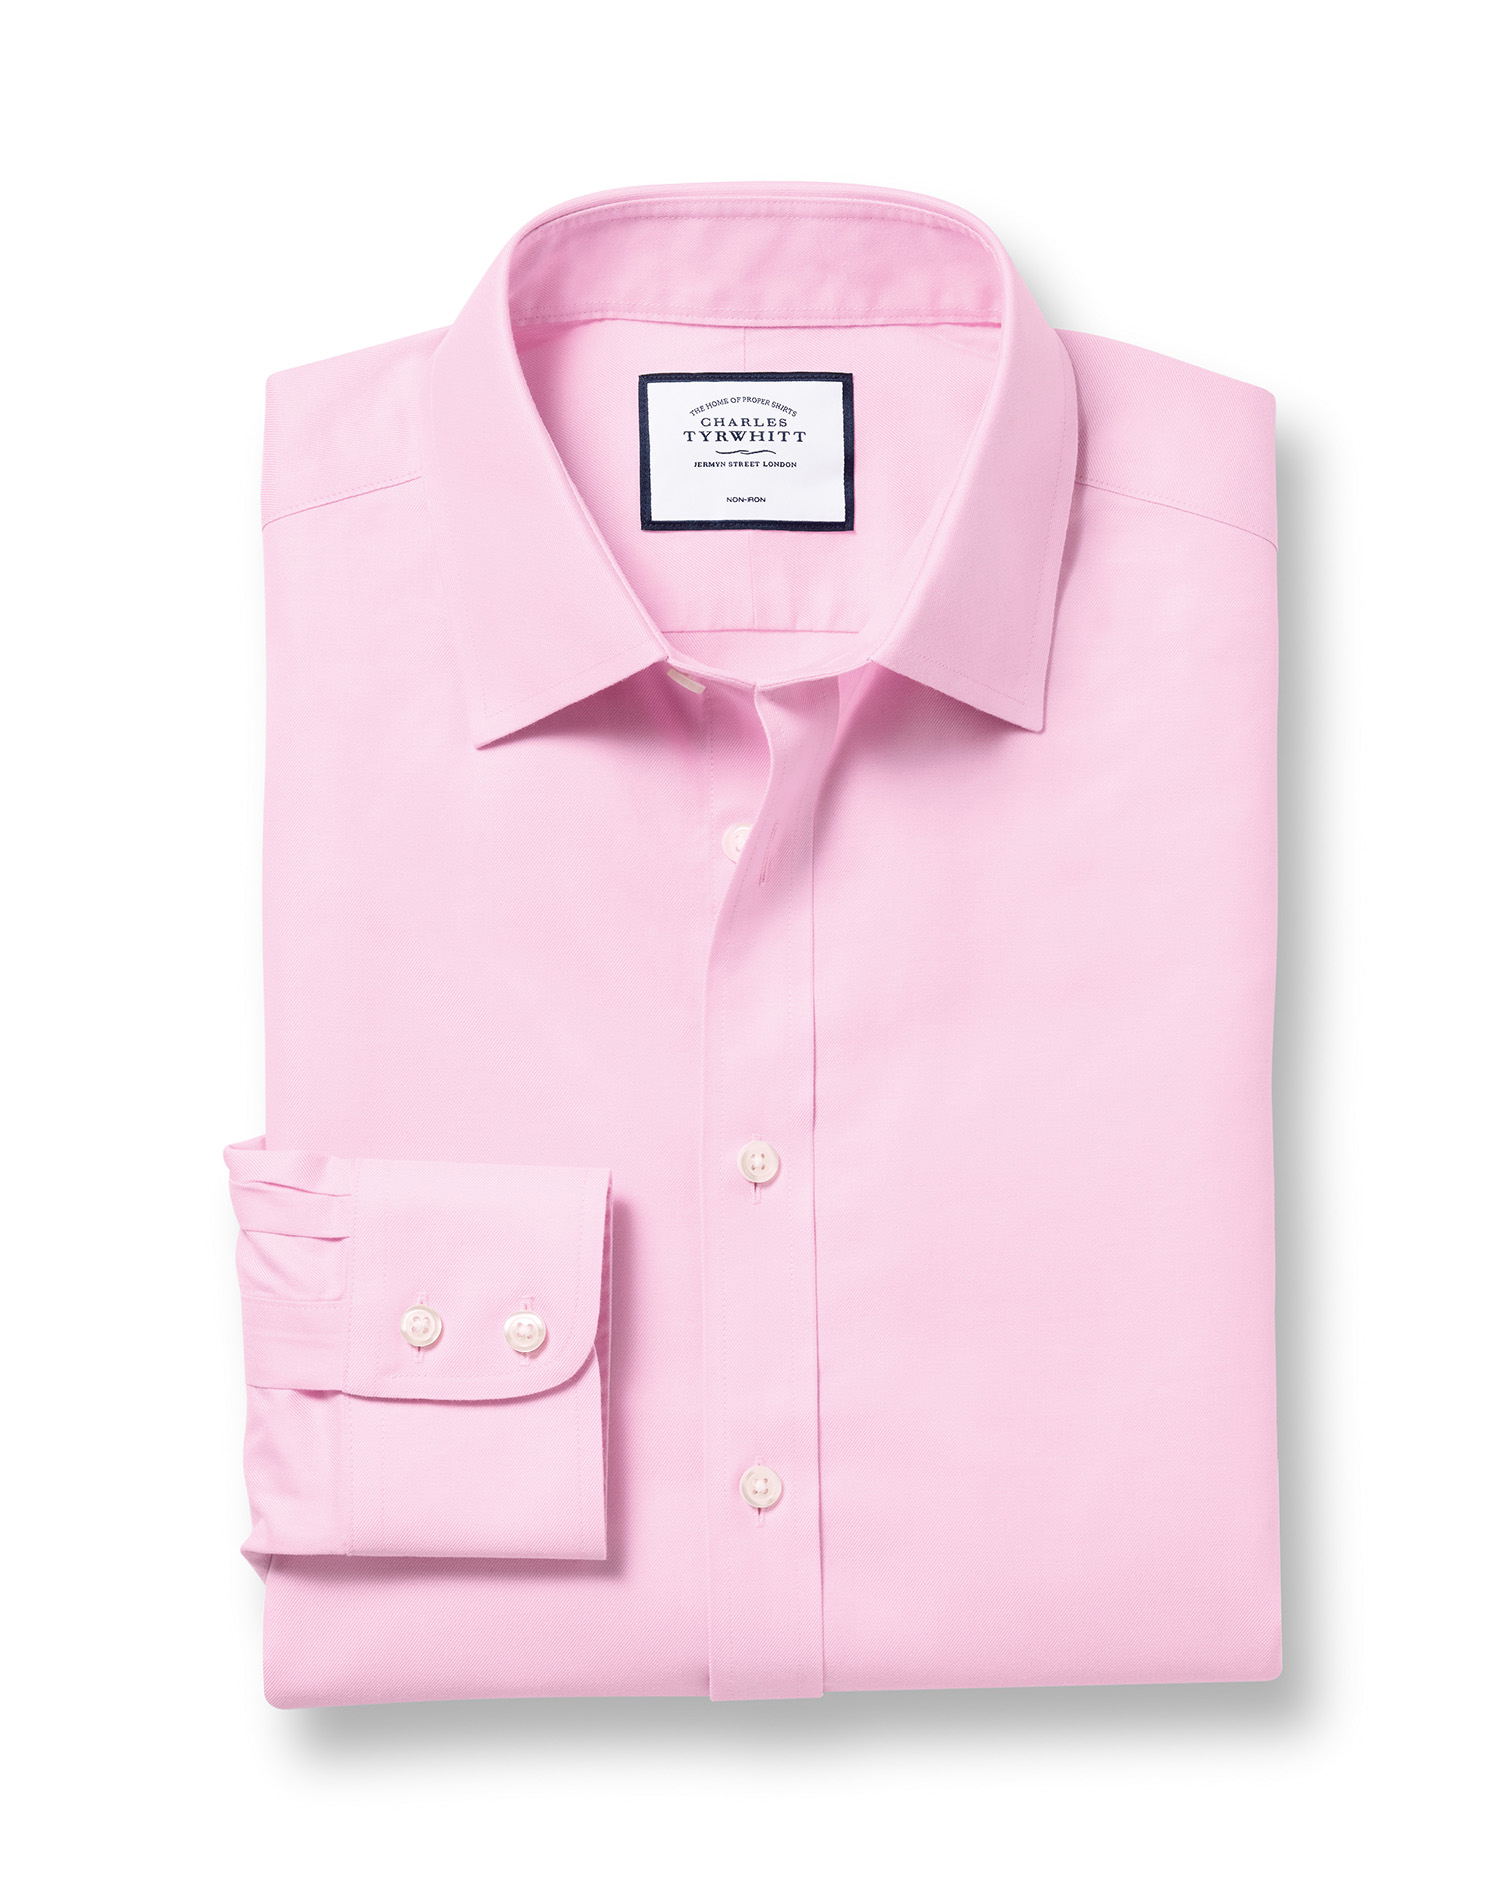 Classic Fit Non-Iron Twill Pink Cotton Formal Shirt Double Cuff Size 16/36 by Charles Tyrwhitt